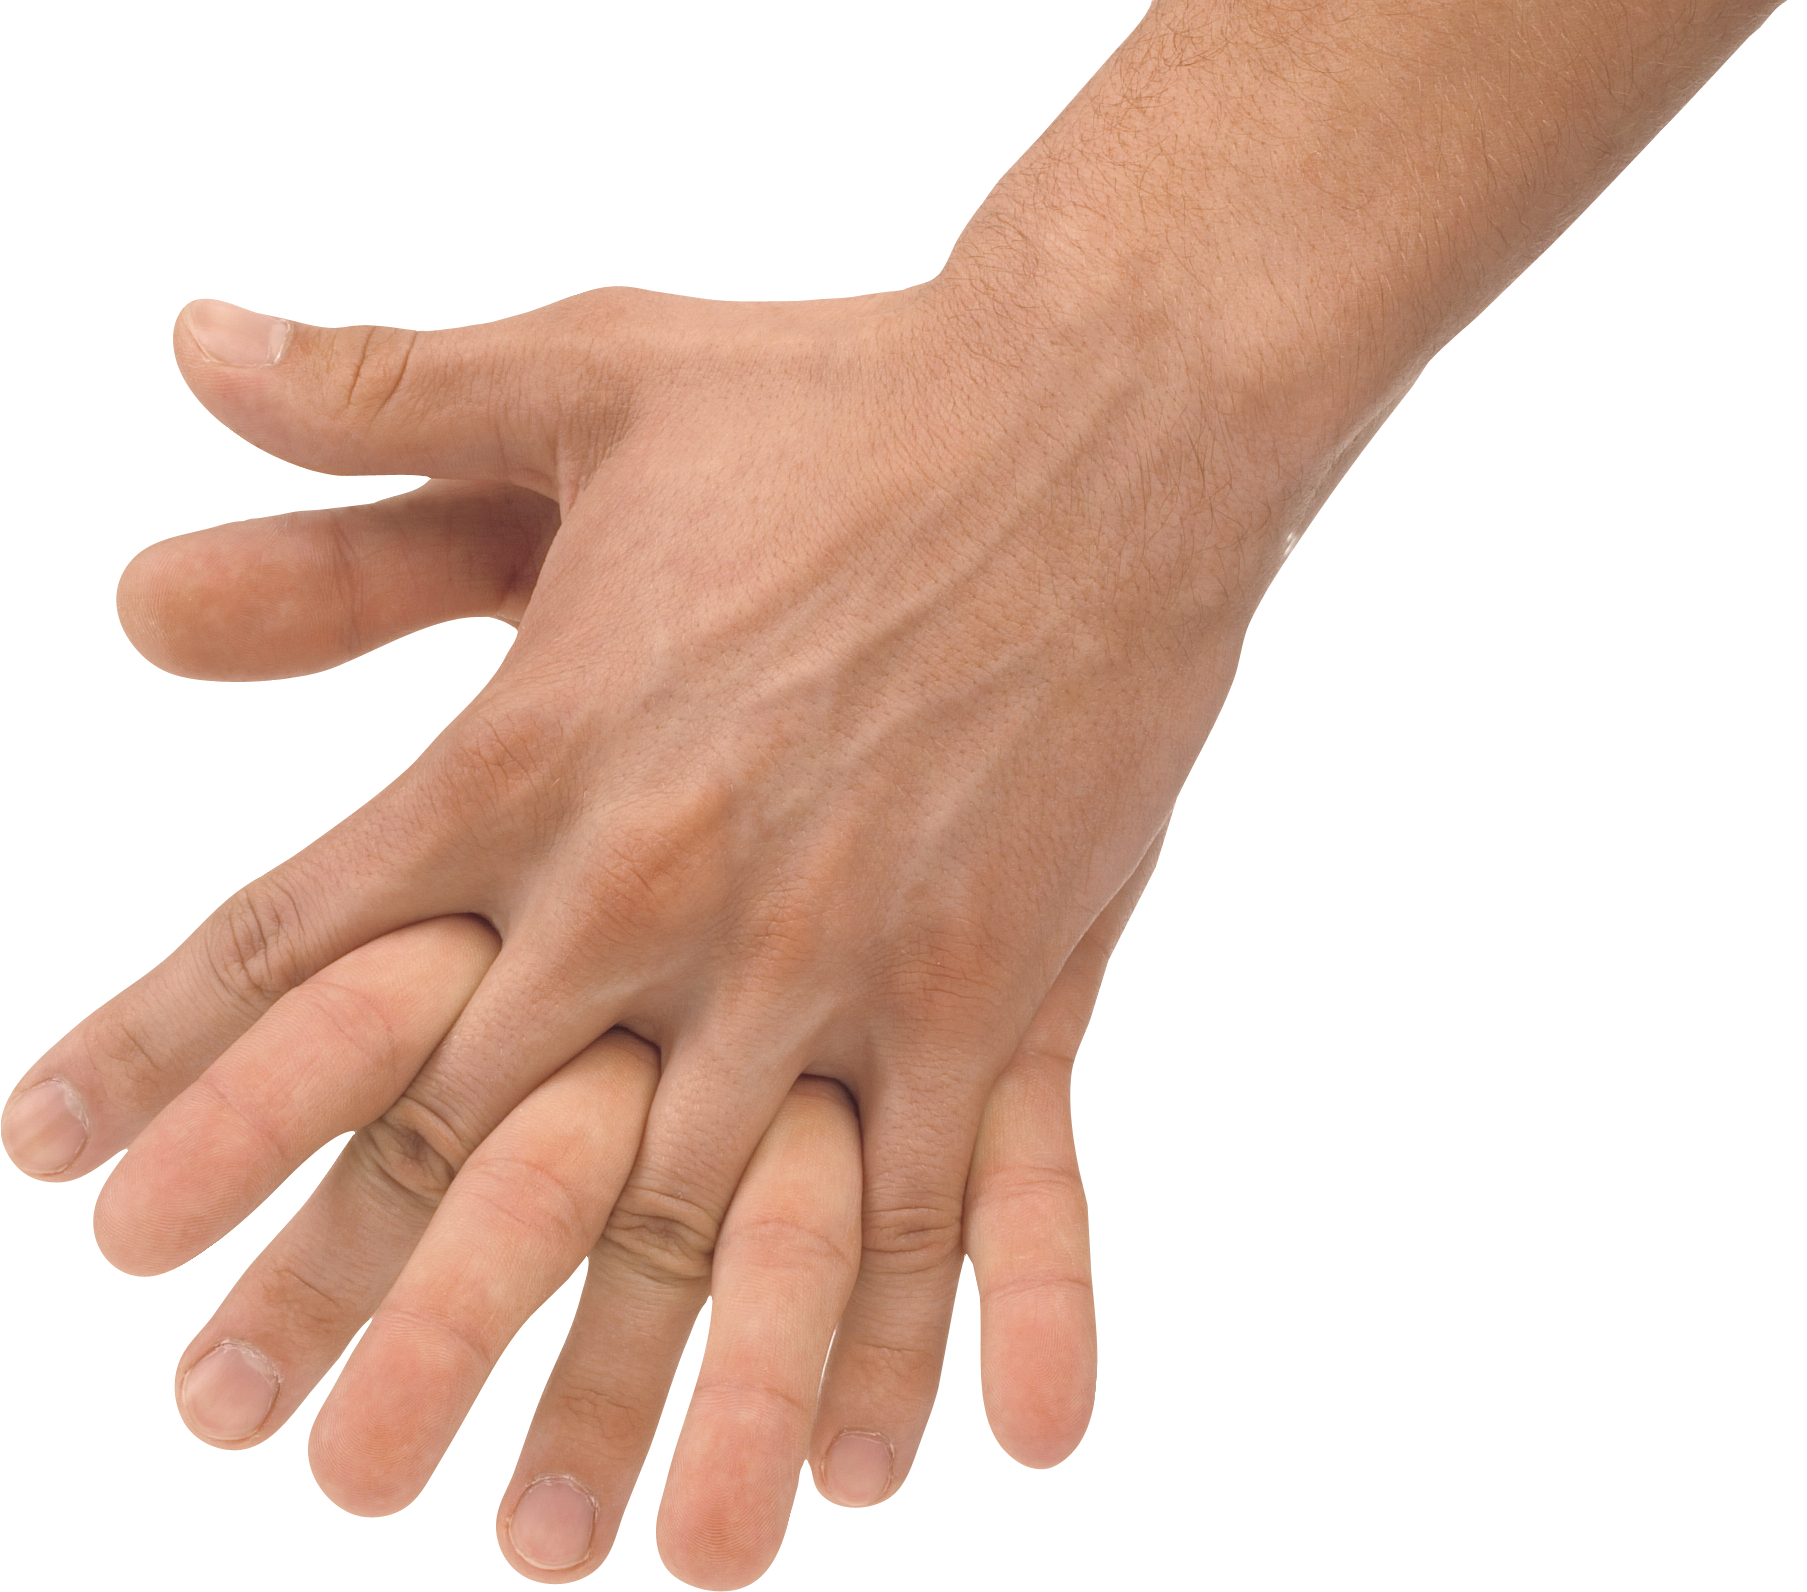 Hands clipart forearm. Png image purepng free